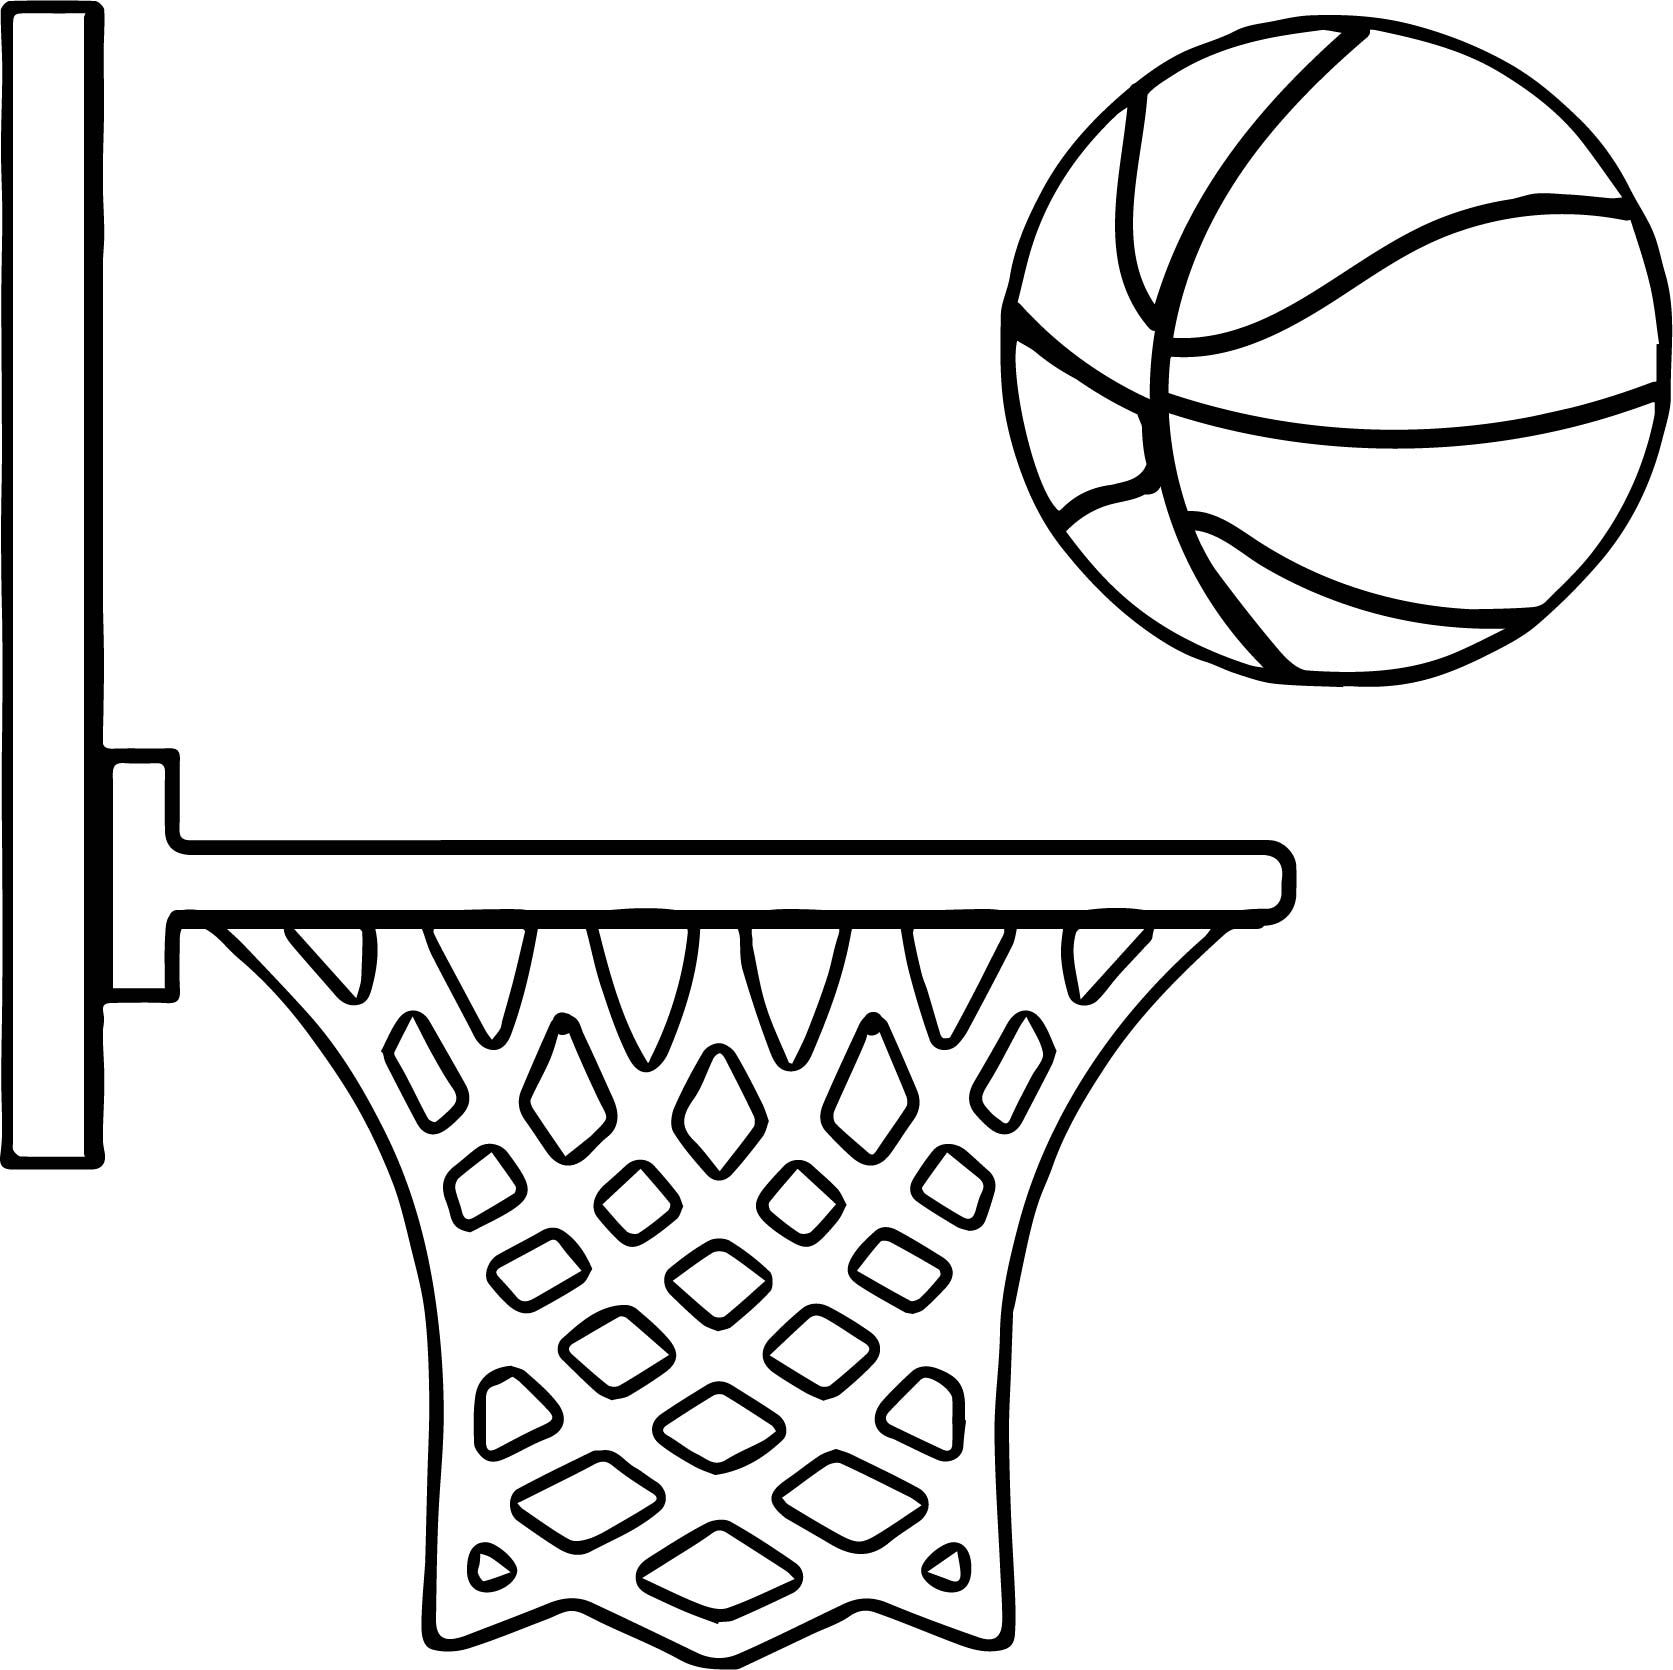 Basketball Coloring Page In 2020 Sports Coloring Pages Coloring